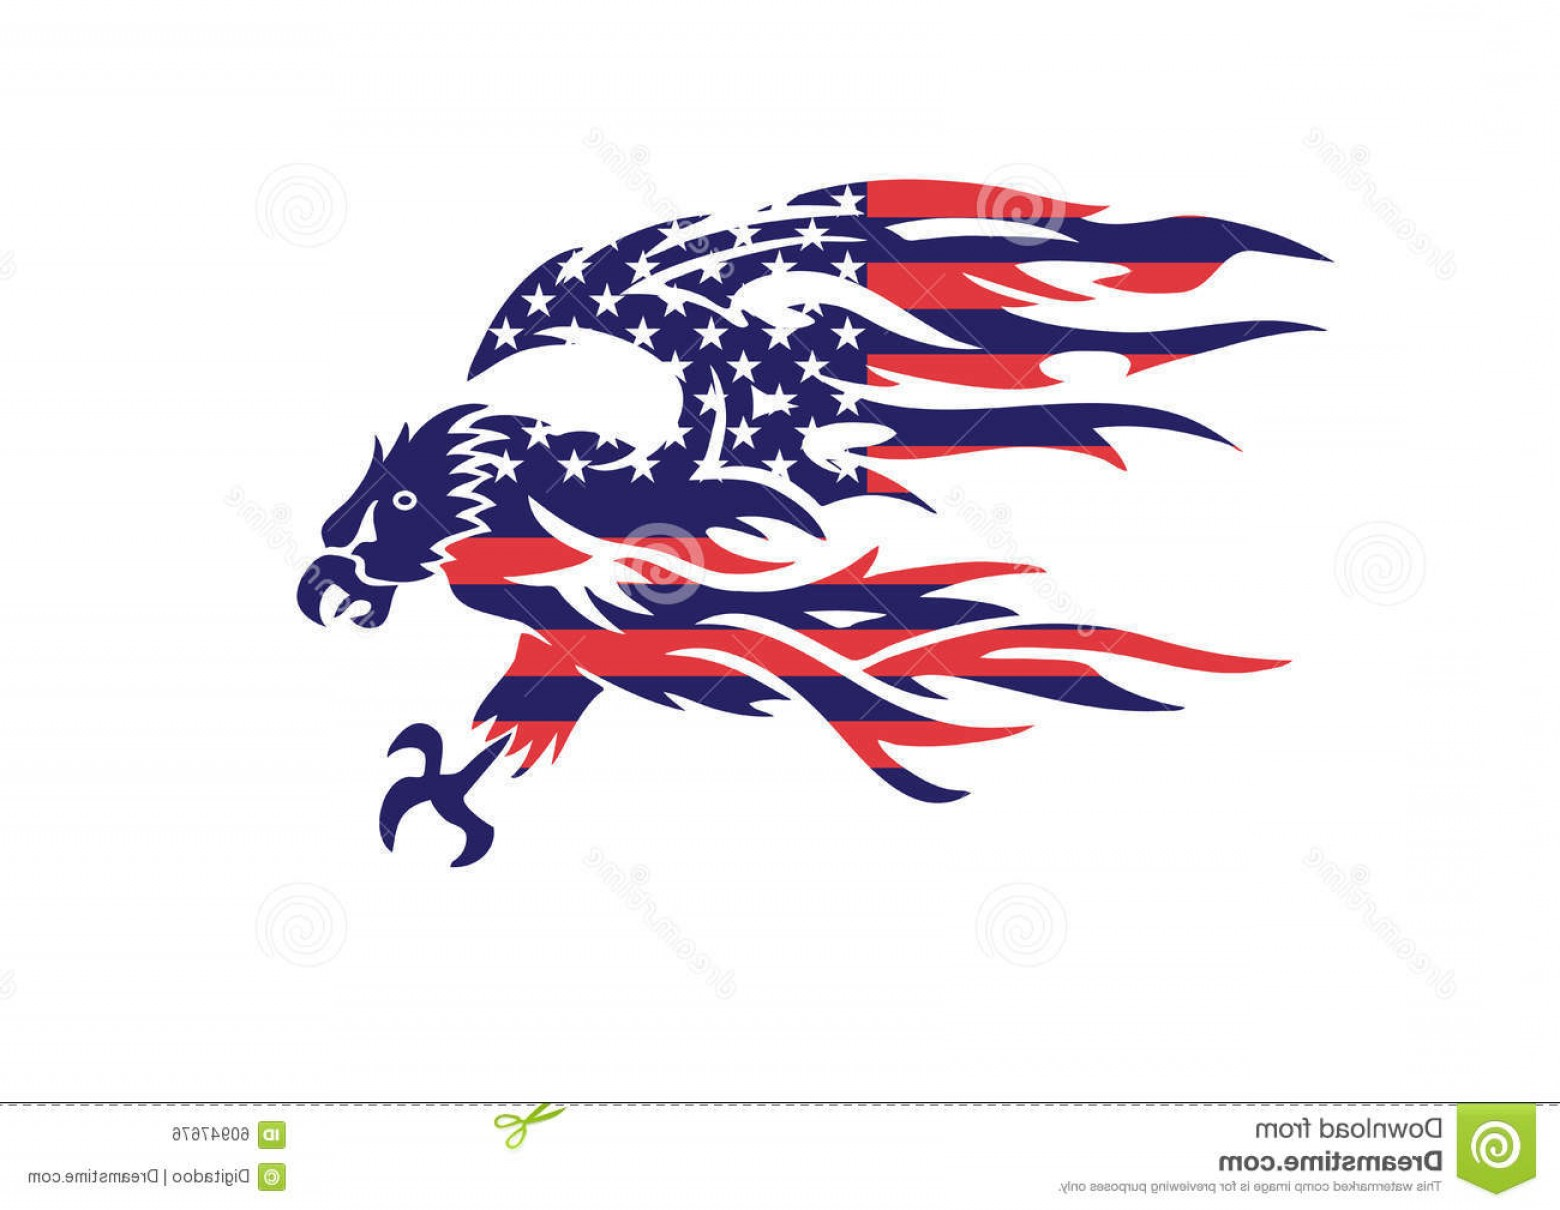 Patriotic Bald Eagle Vector: Stock Illustration Usa Flag Patriotic Eagle Bald Hawk Vector Logo Head Object Image